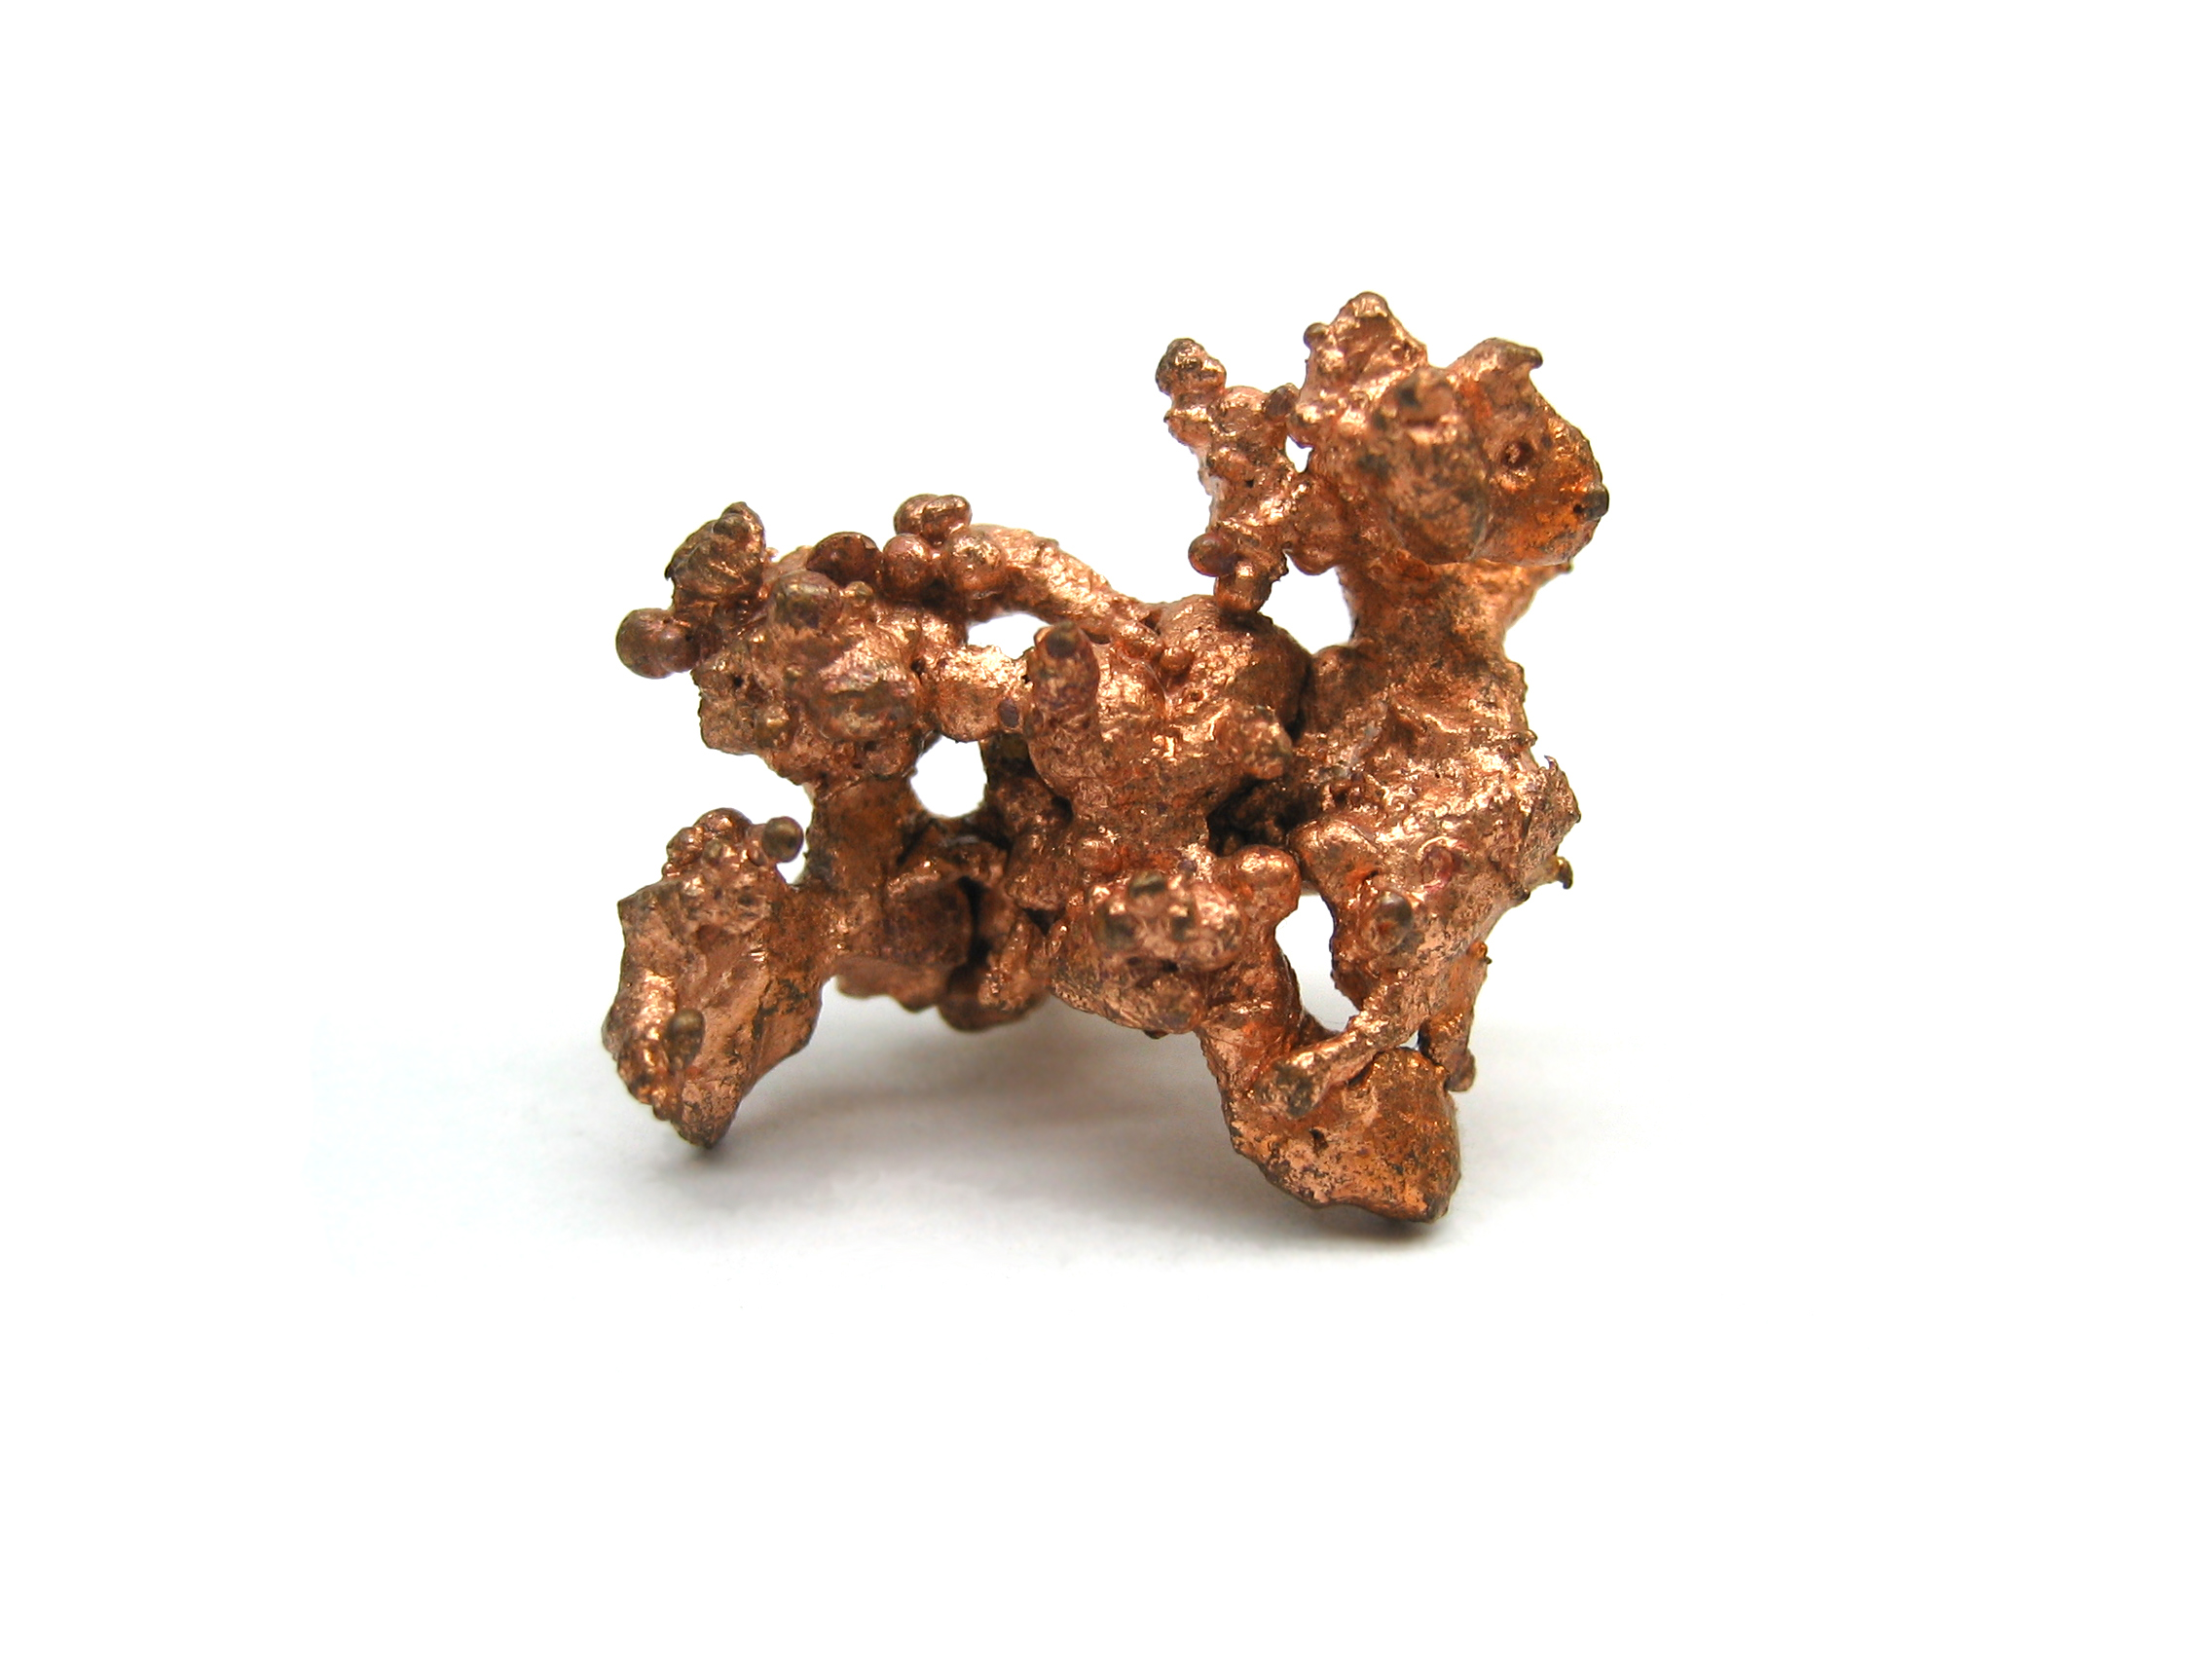 Is Copper An Natural Resource